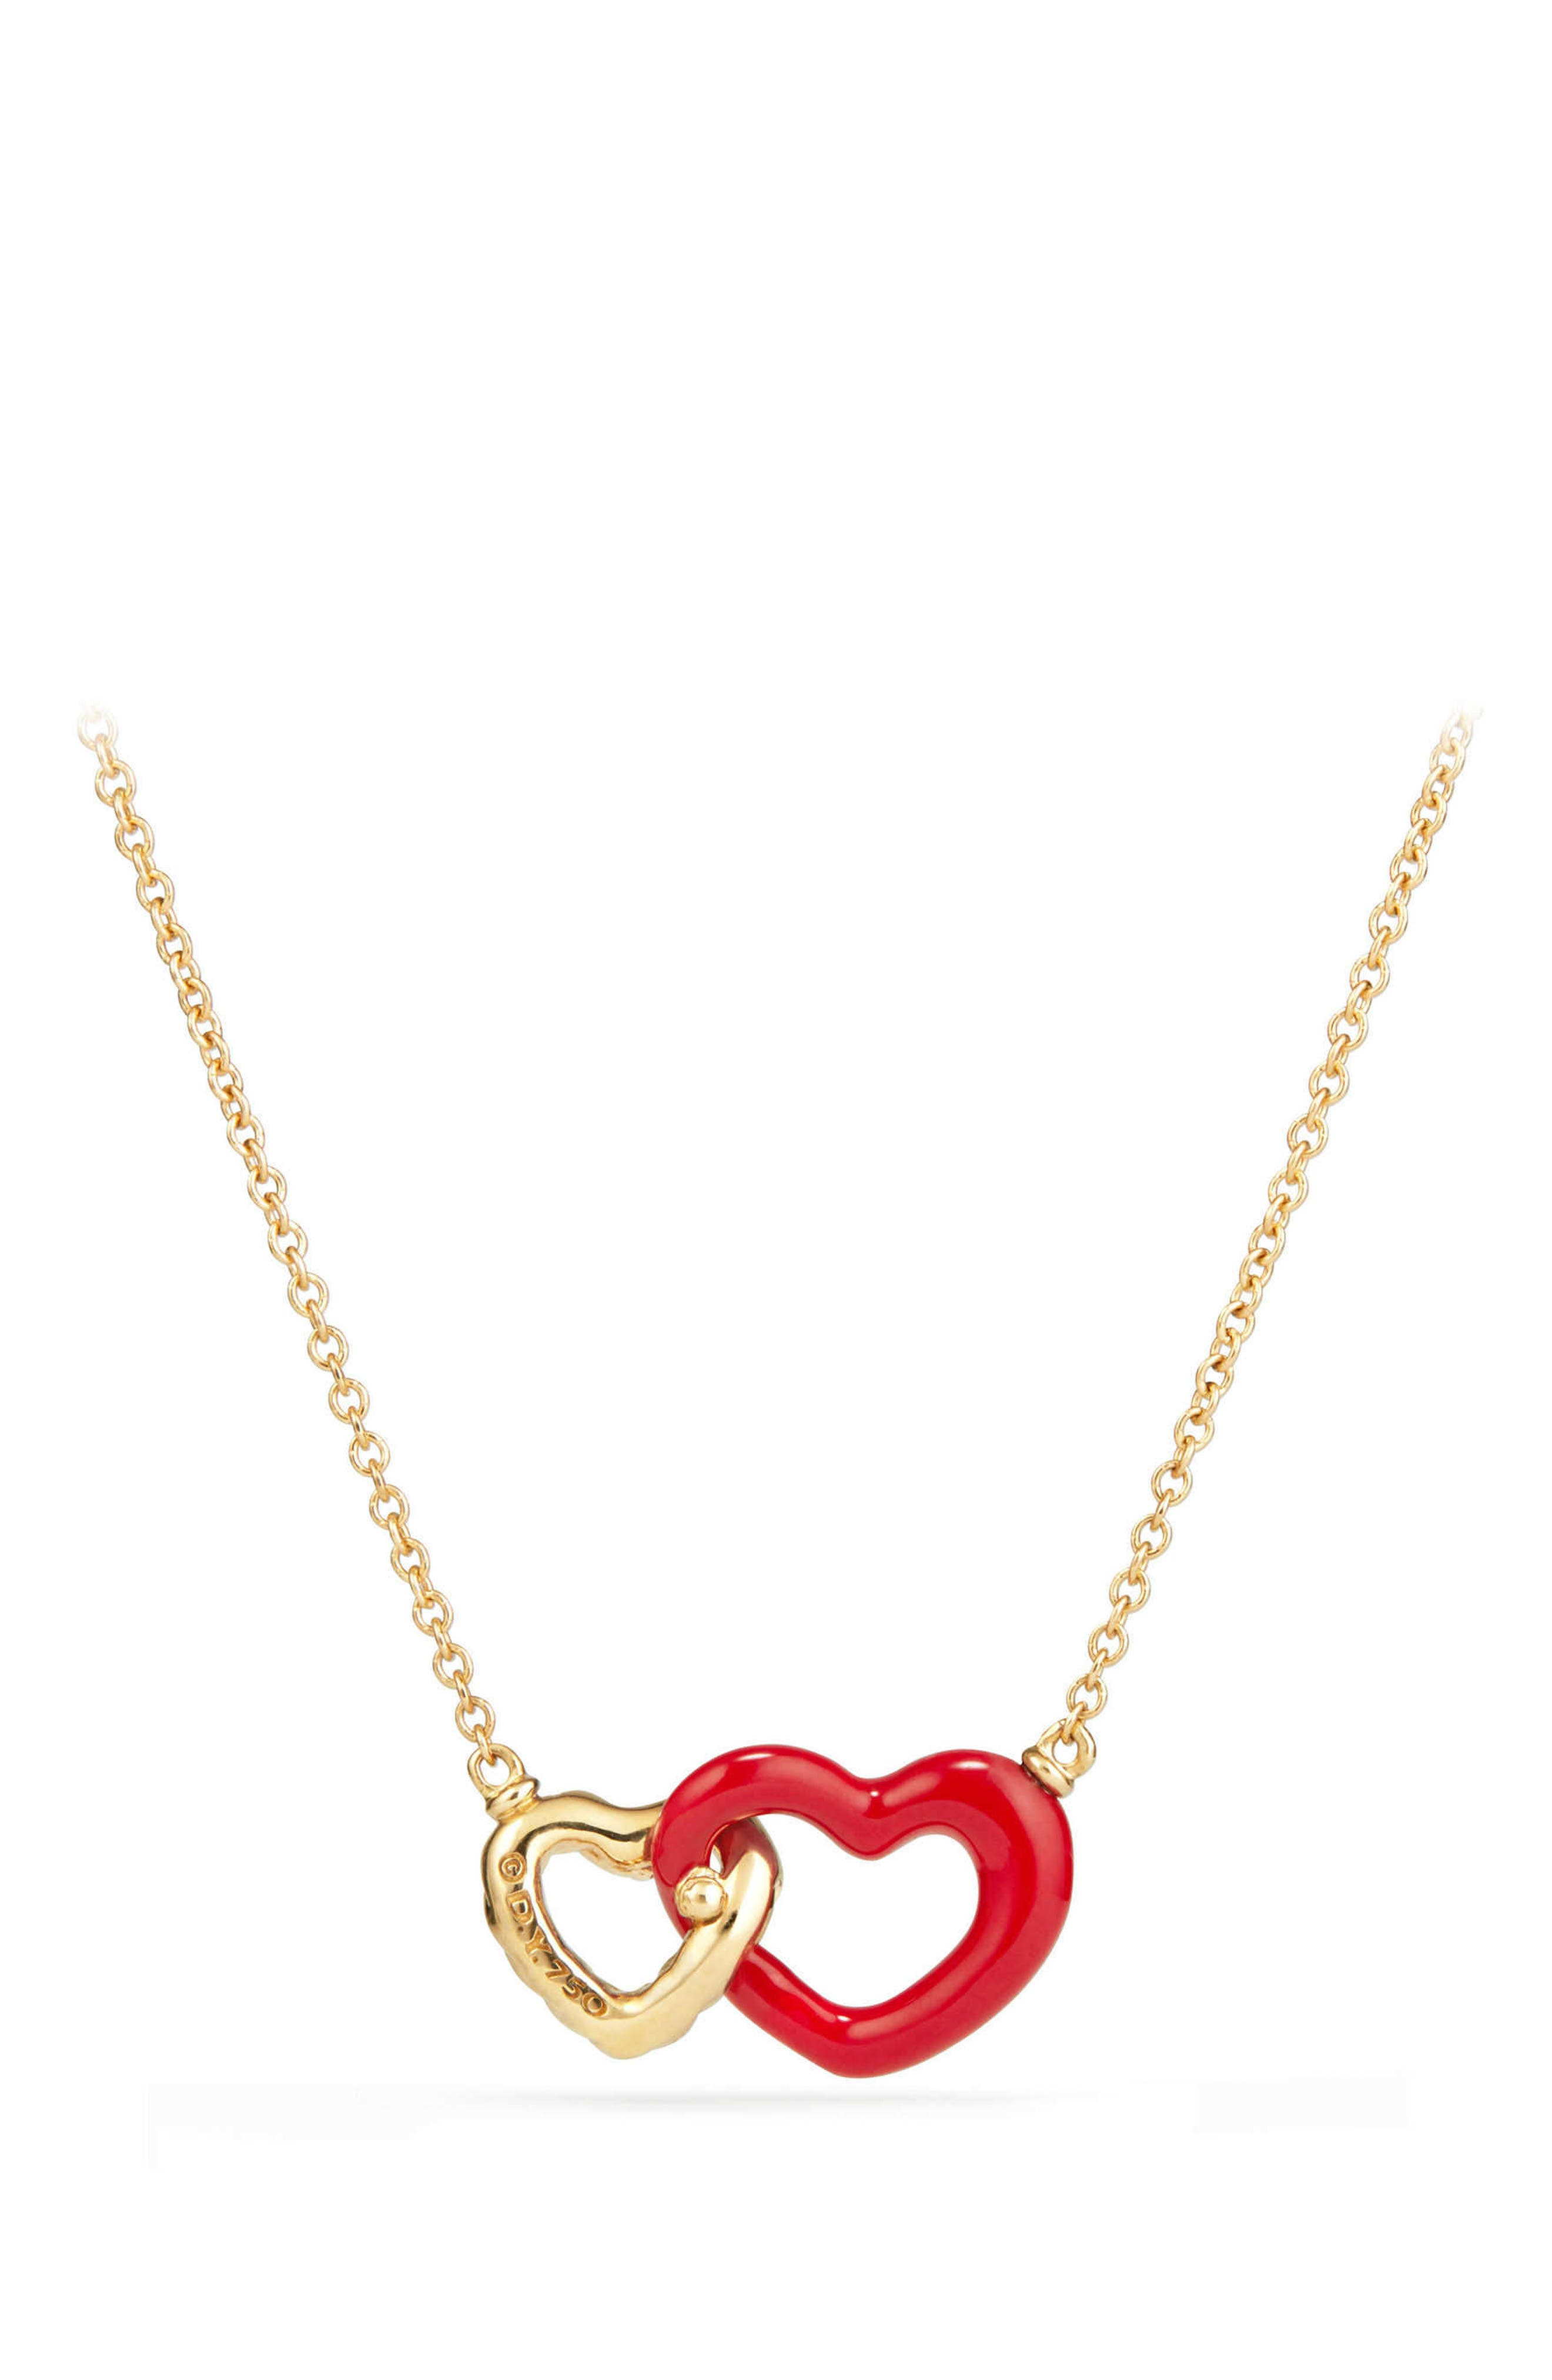 Double Heart Pendant Necklace with Red Enamel and 18K Gold,                             Alternate thumbnail 2, color,                             GOLD